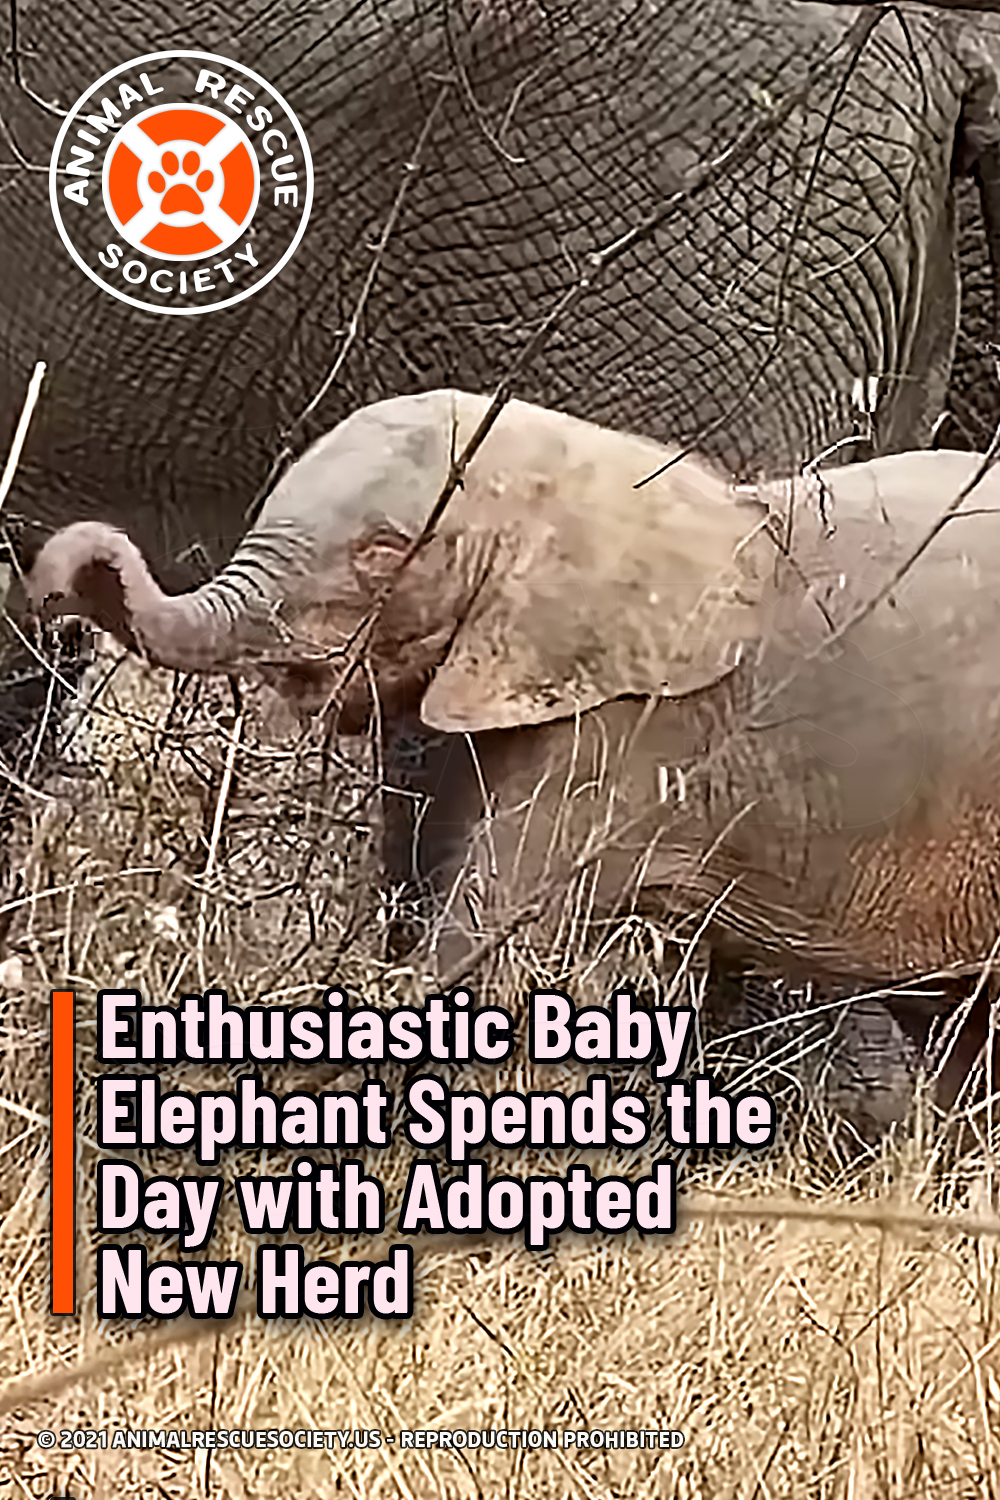 Enthusiastic Baby Elephant Spends the Day with Adopted New Herd